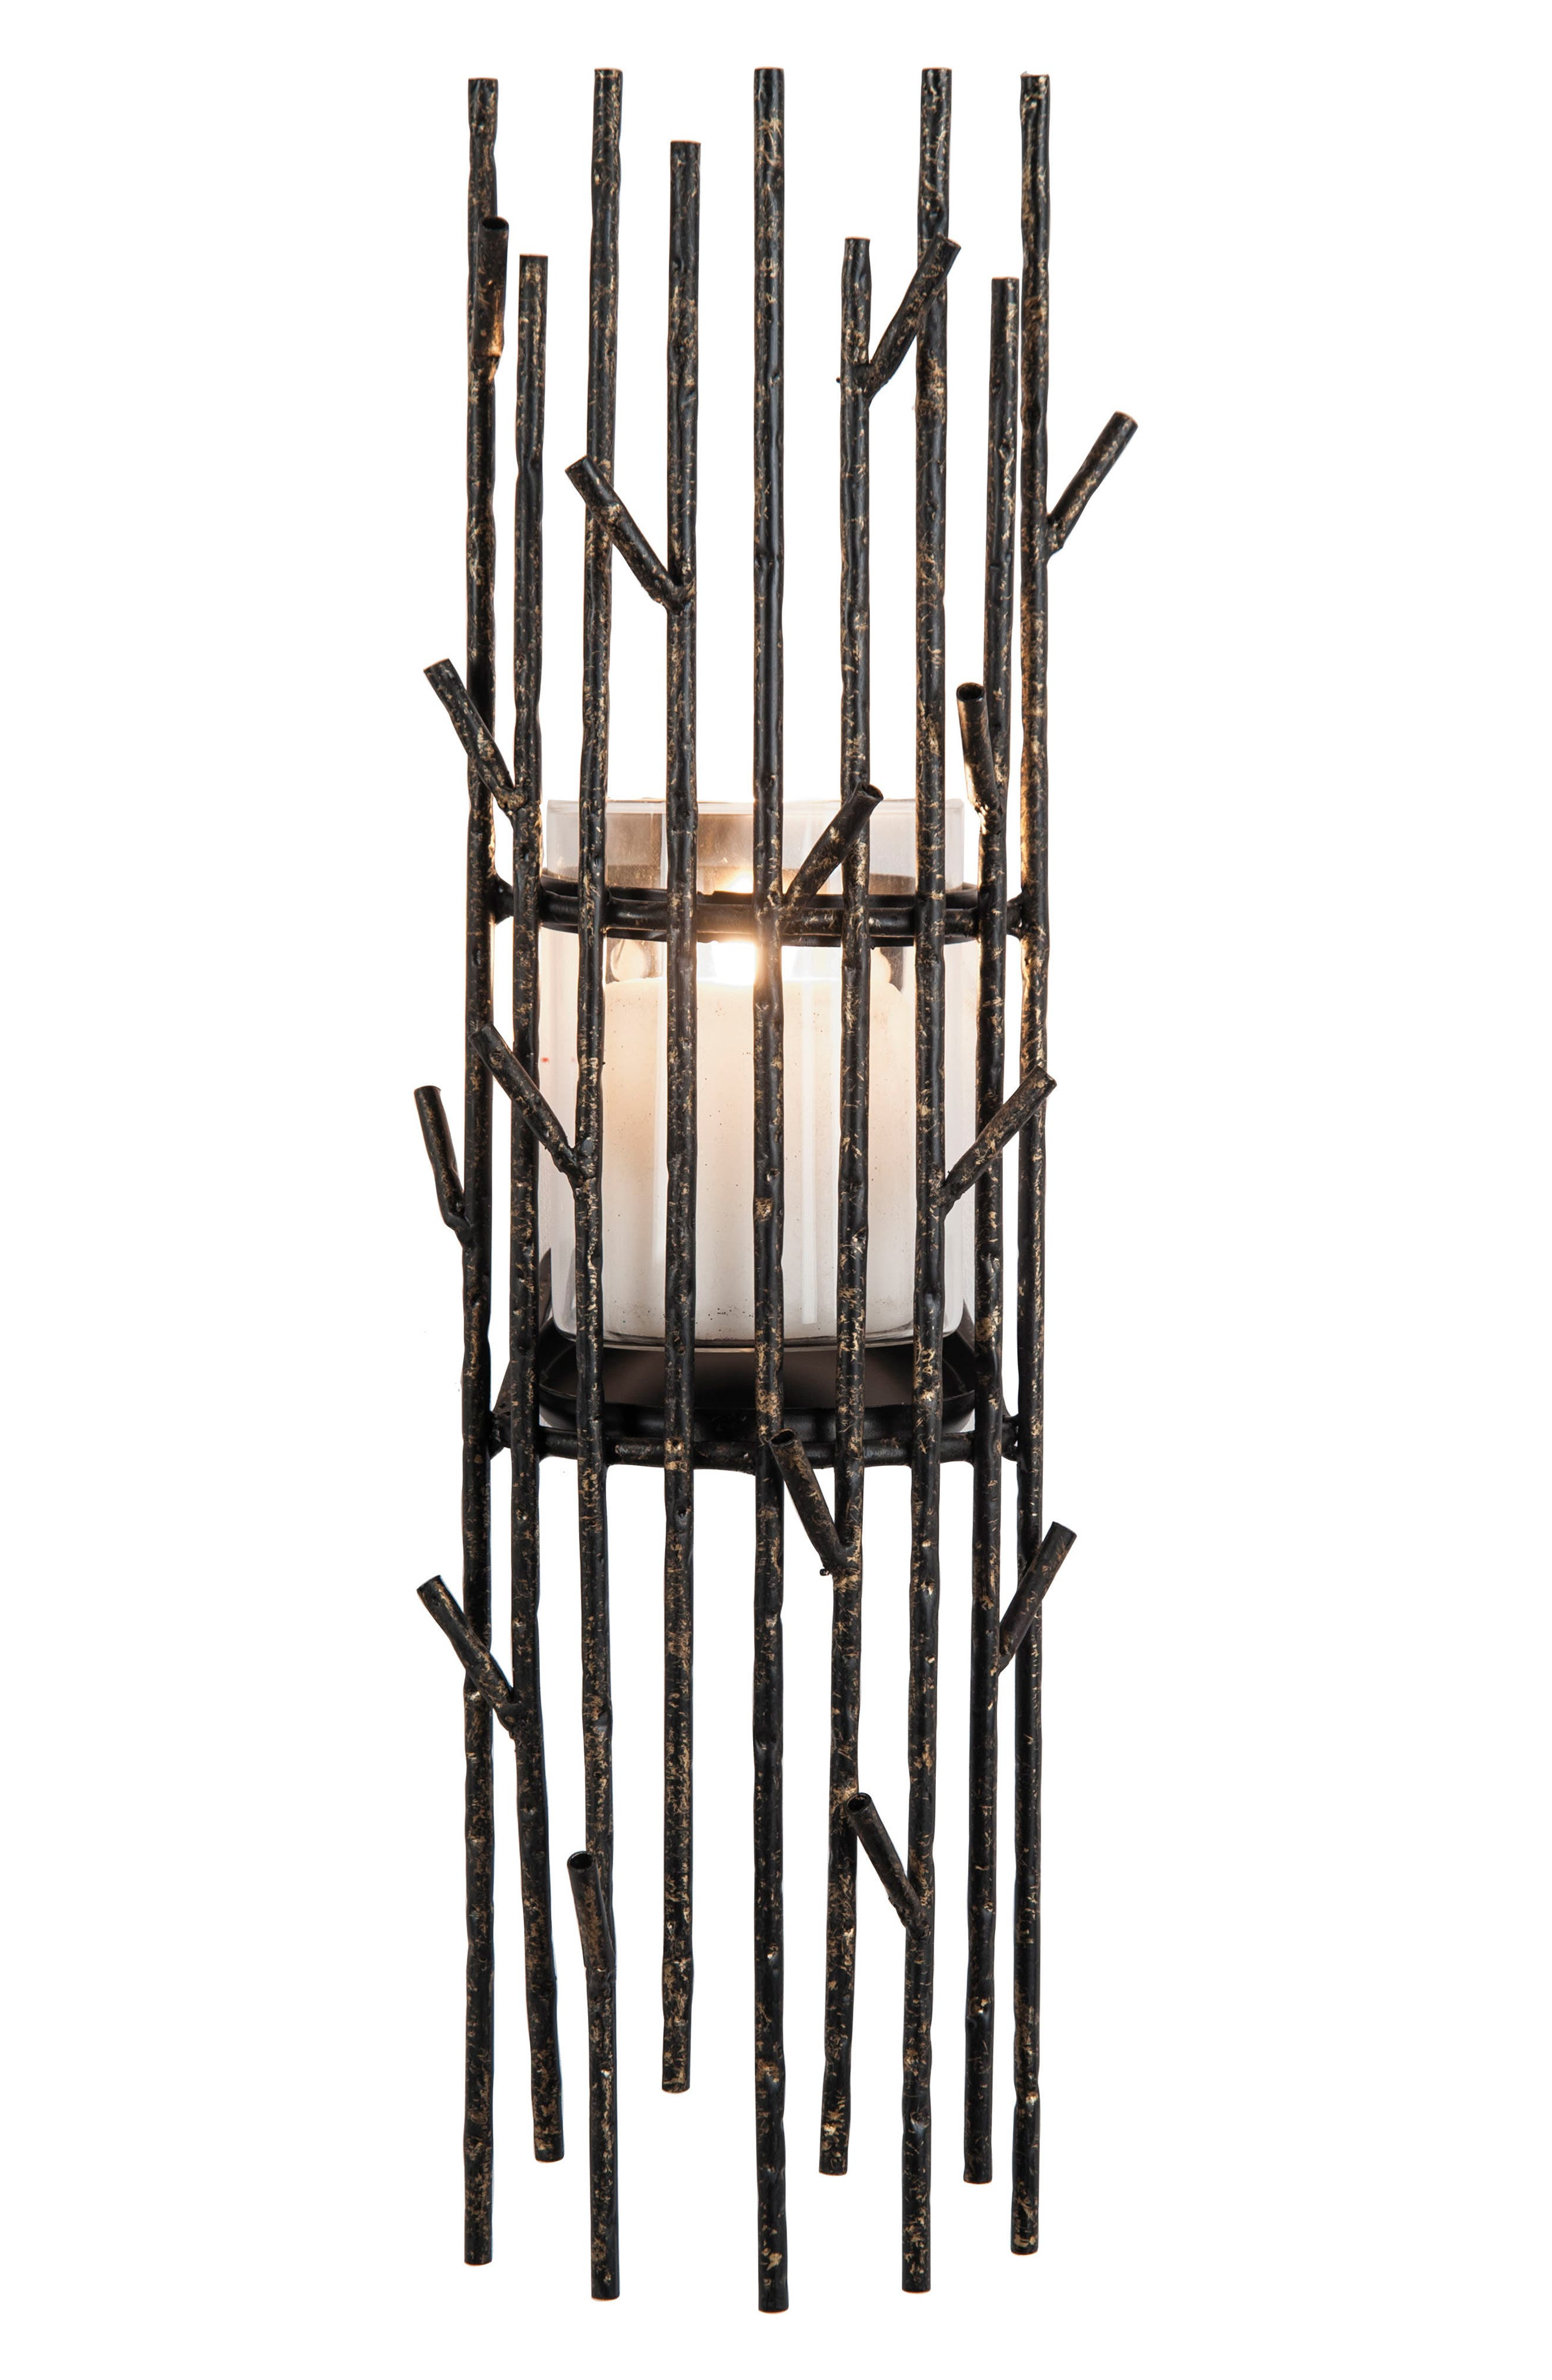 Twig Wall Candle Holder,                             Main thumbnail 1, color,                             Metal/ Glass